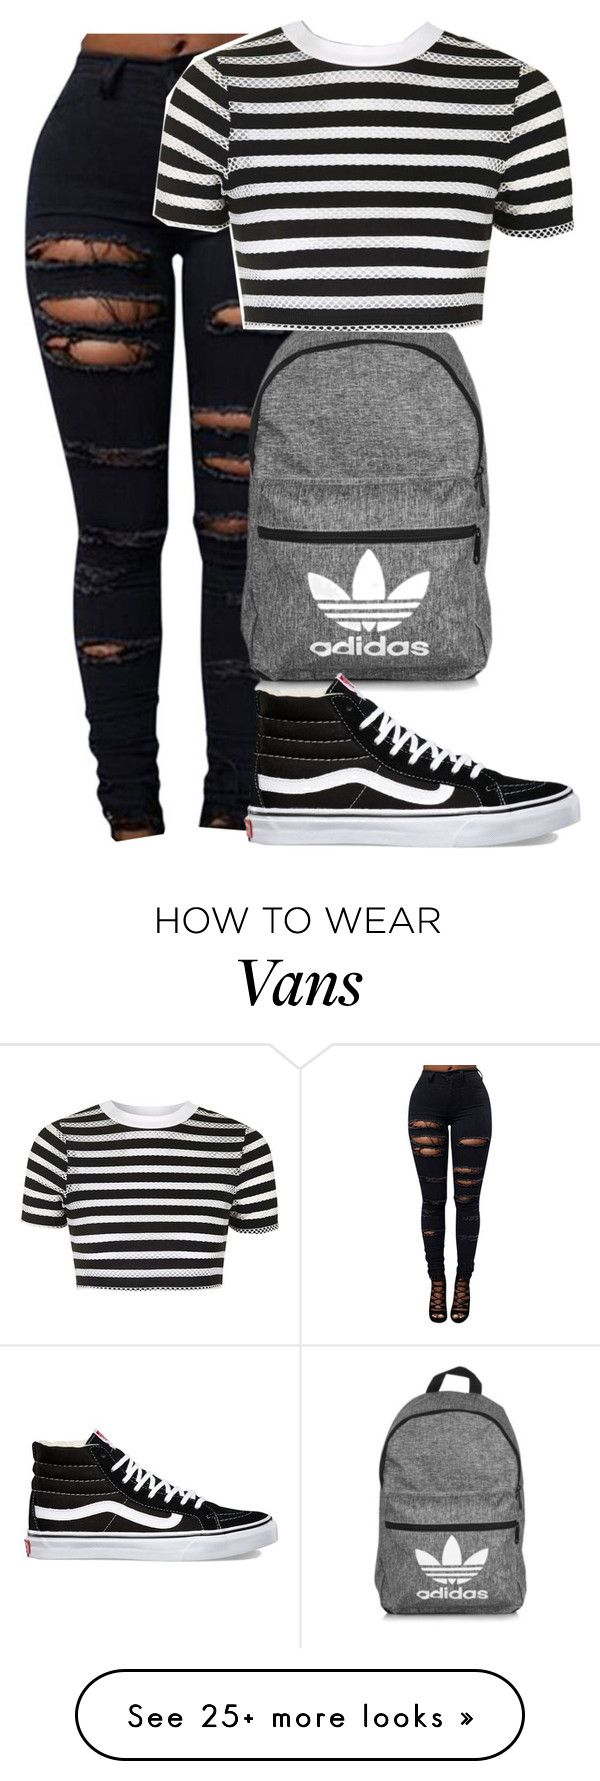 """Untitled #154"" by newyorkbae on Polyvore featuring adidas, Topshop and Vans"